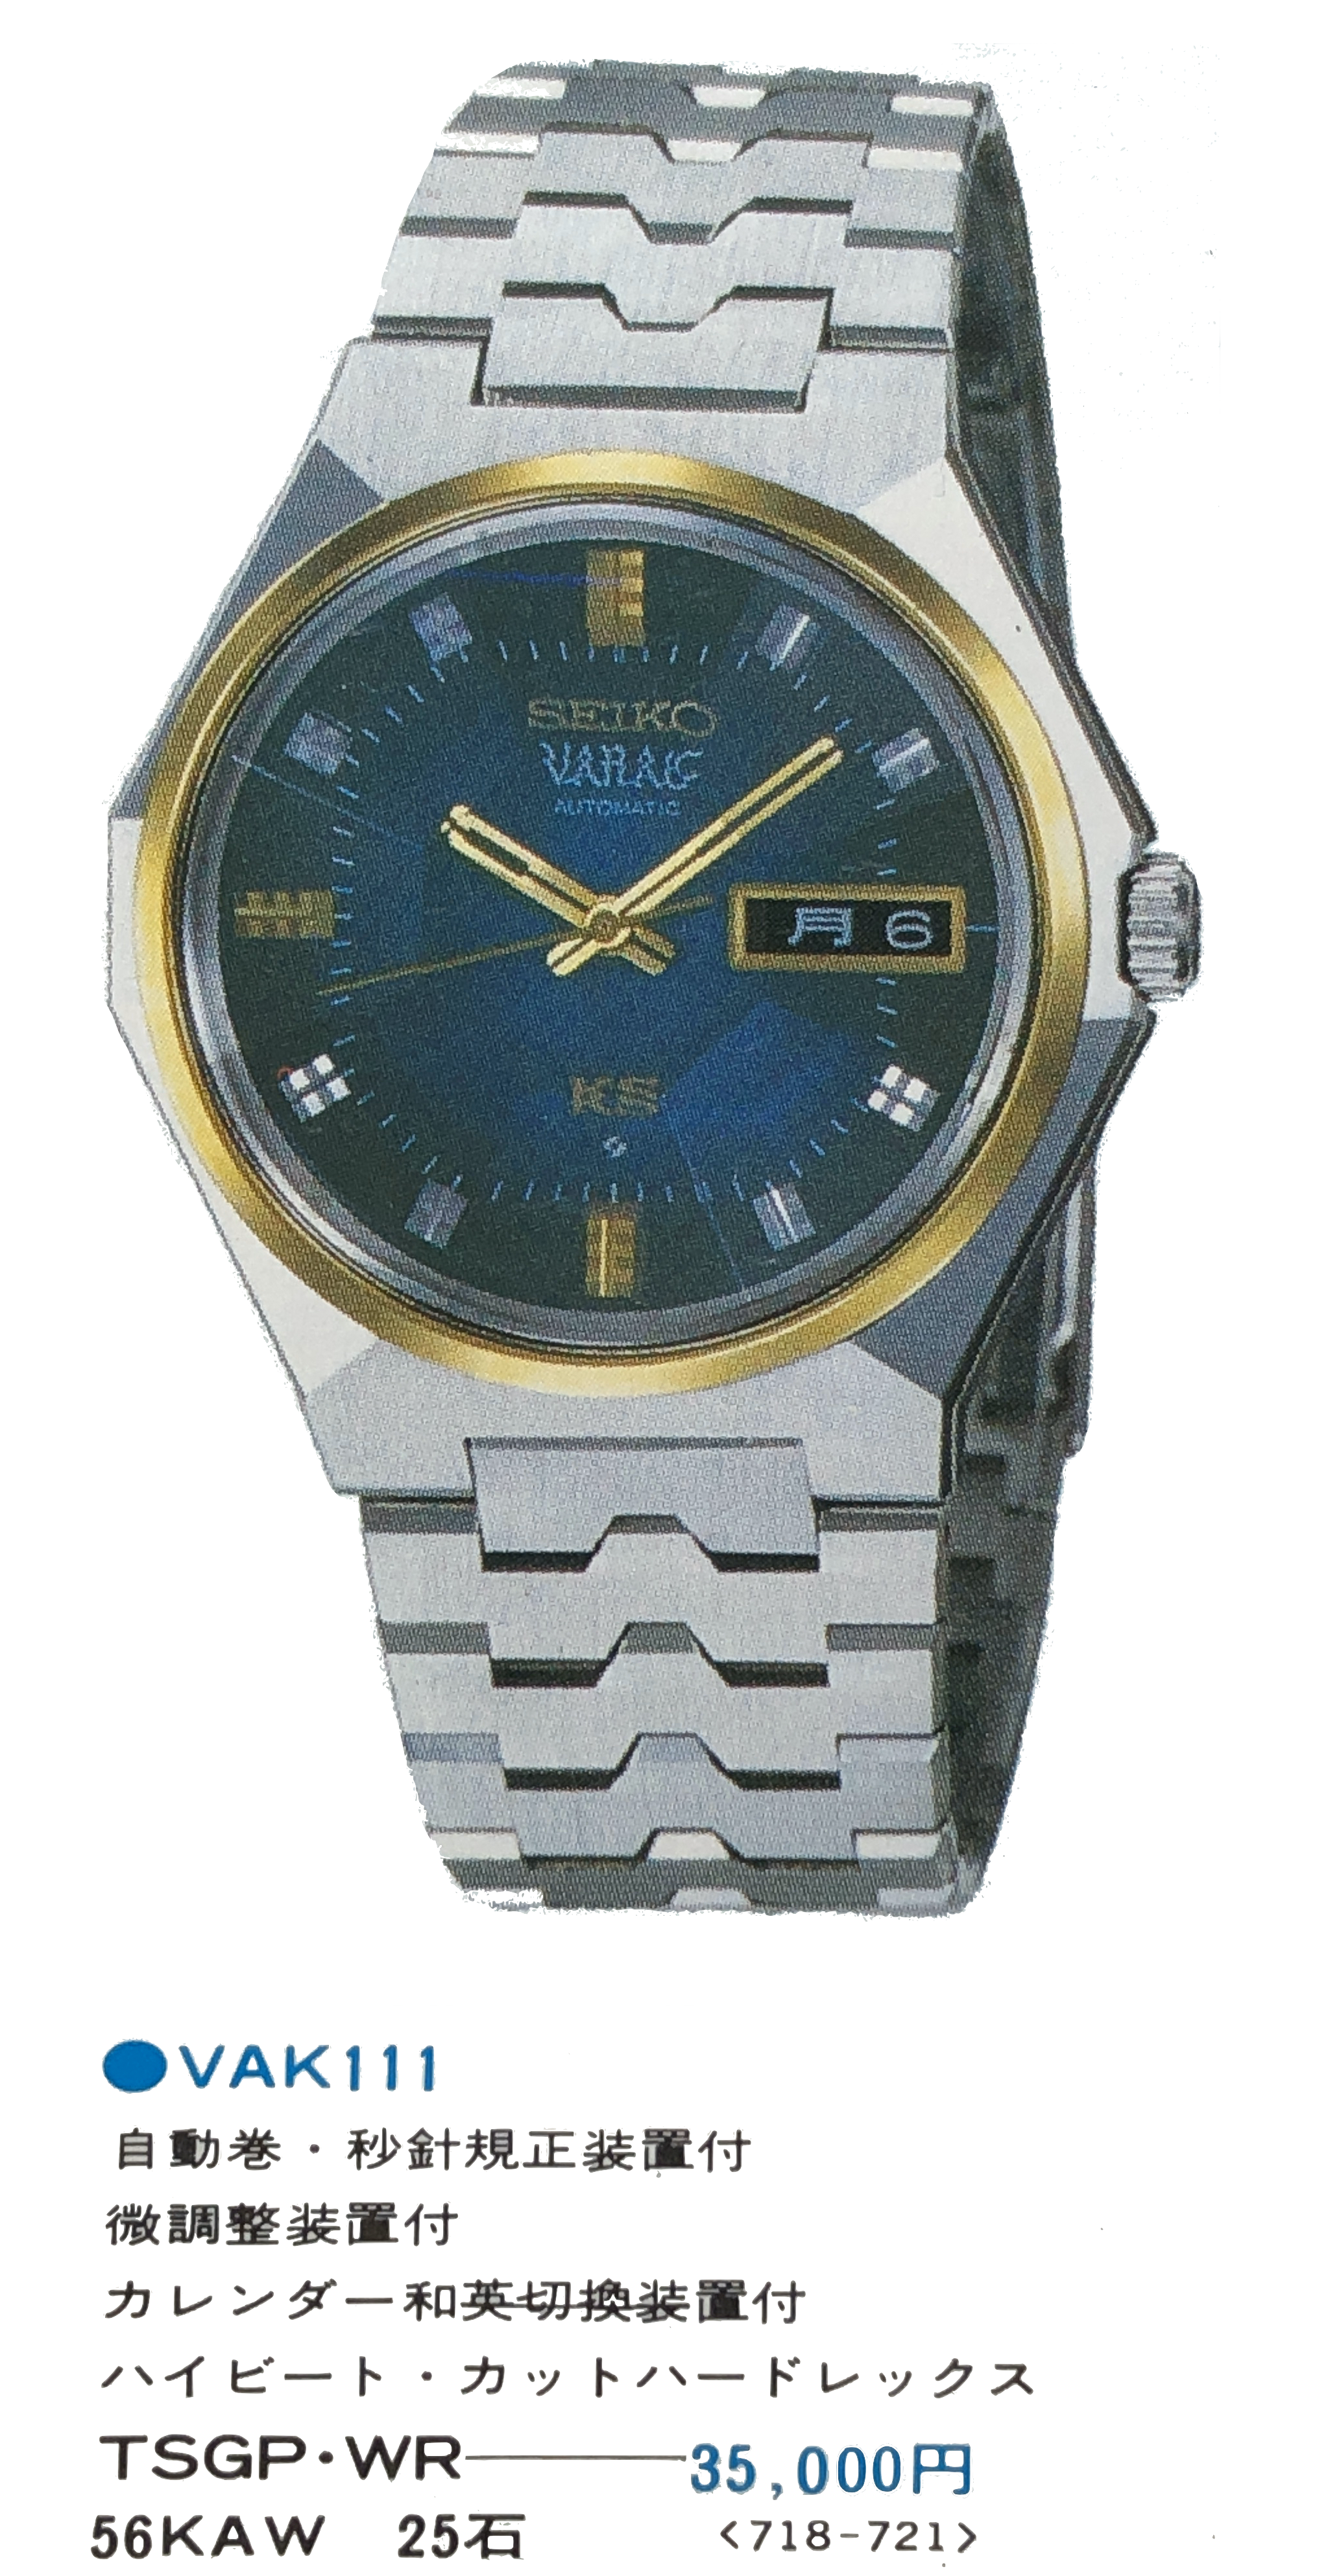 King Seiko Vanac 5626-7180 (Incoming)